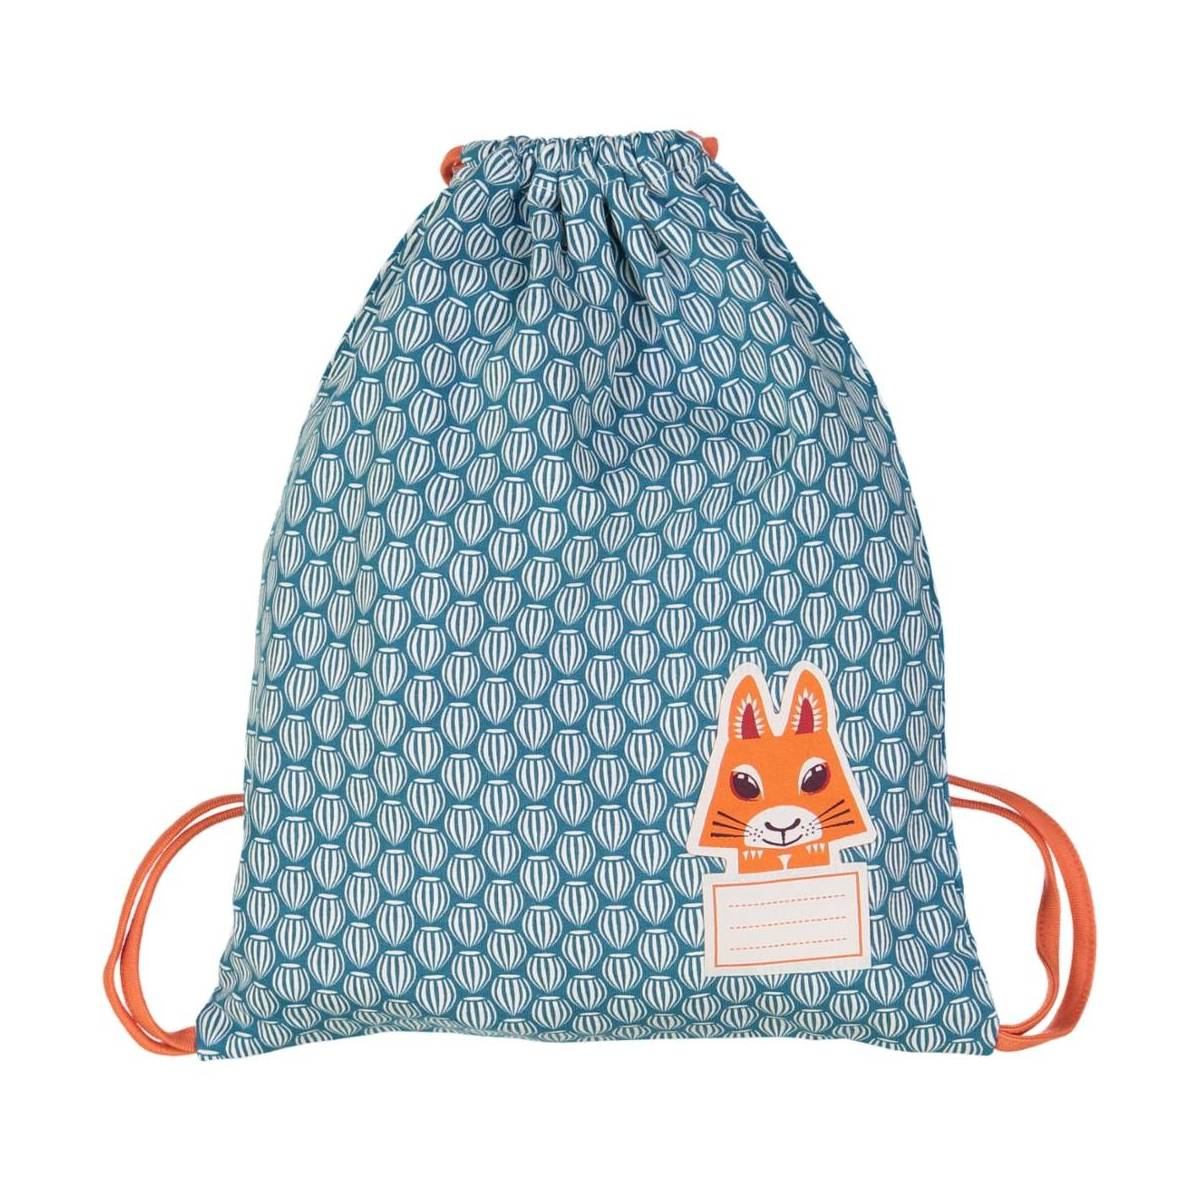 Squirrel pyjama bag